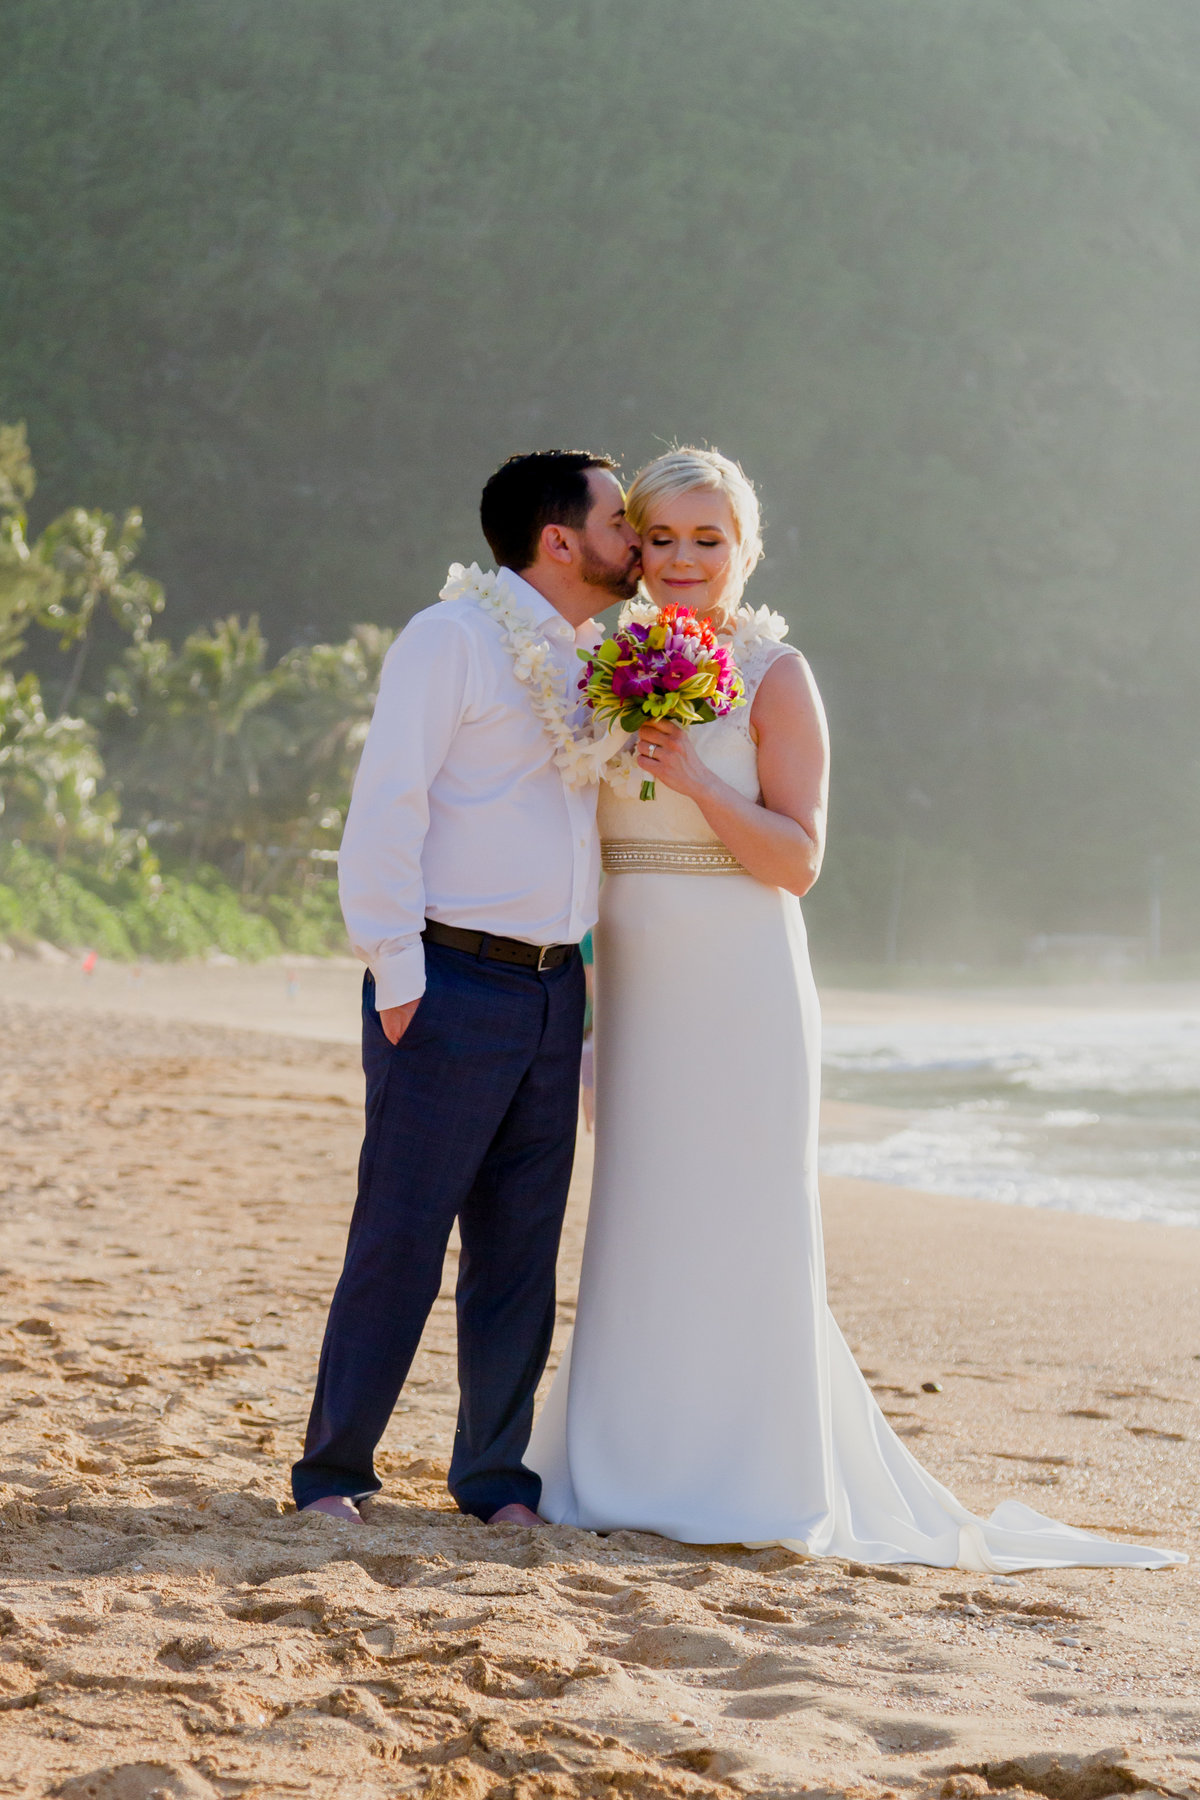 Wedding photos on Kauai's north shore.